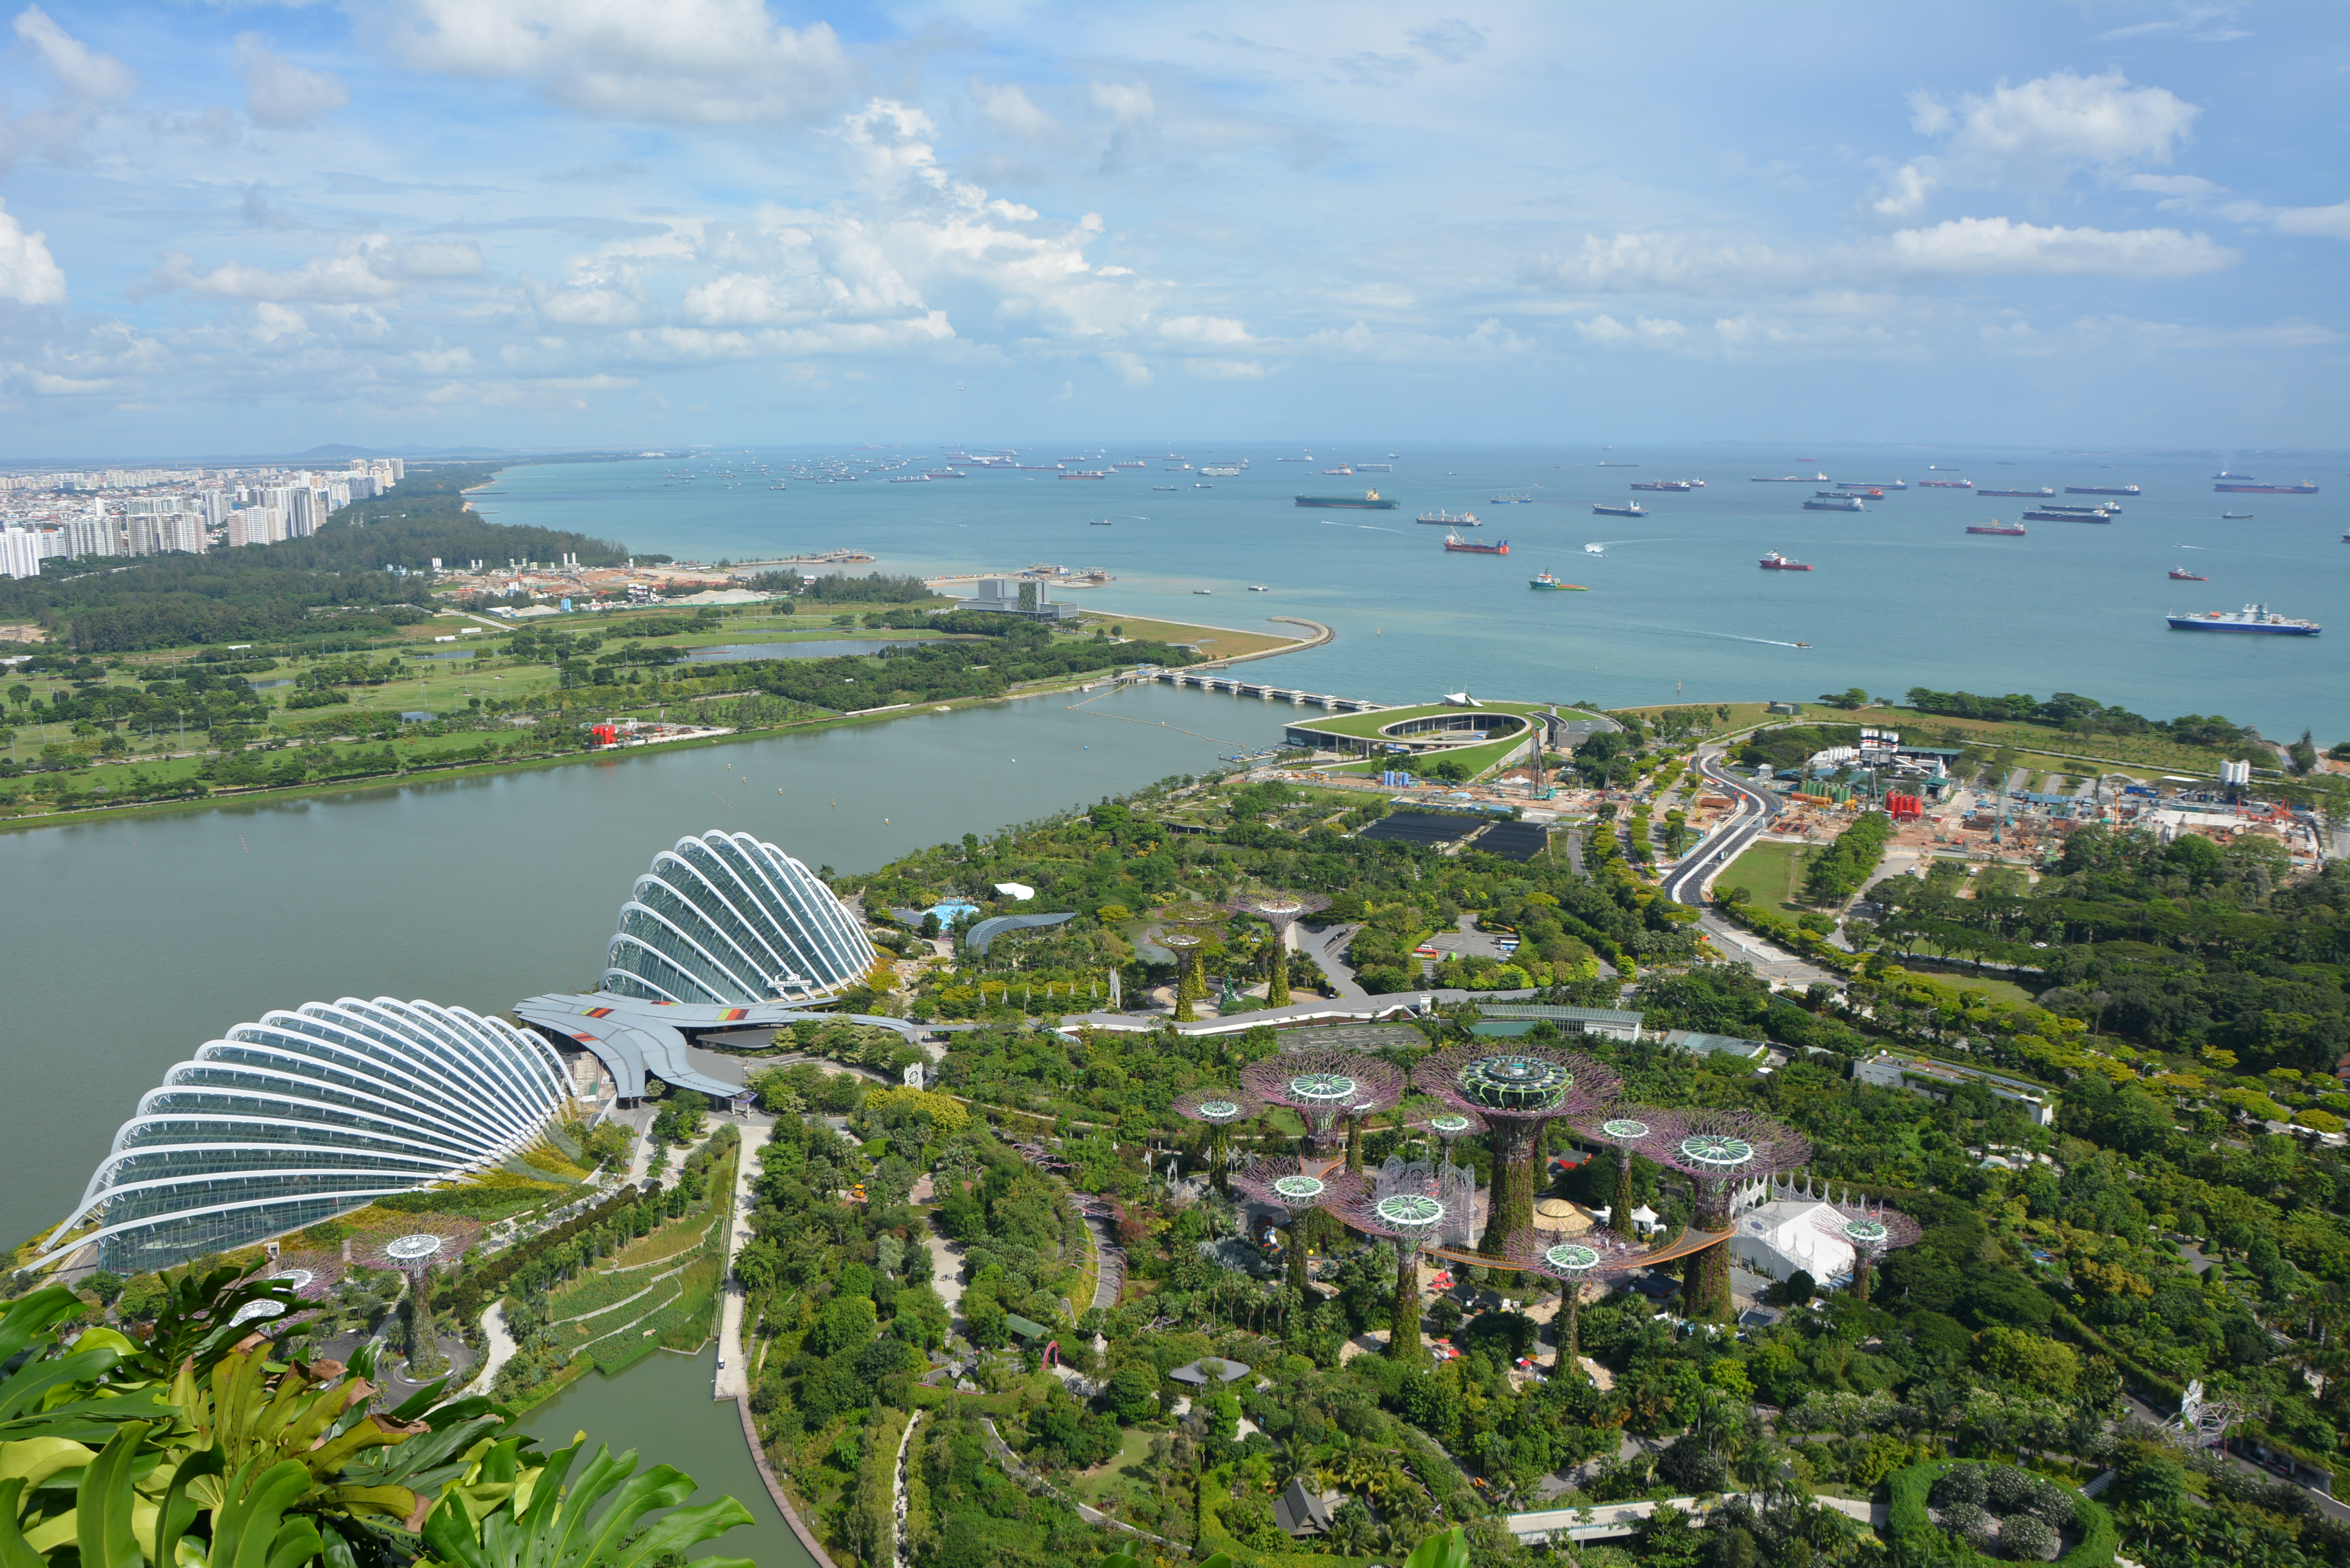 Marina Bay Sands gardens by the bay view